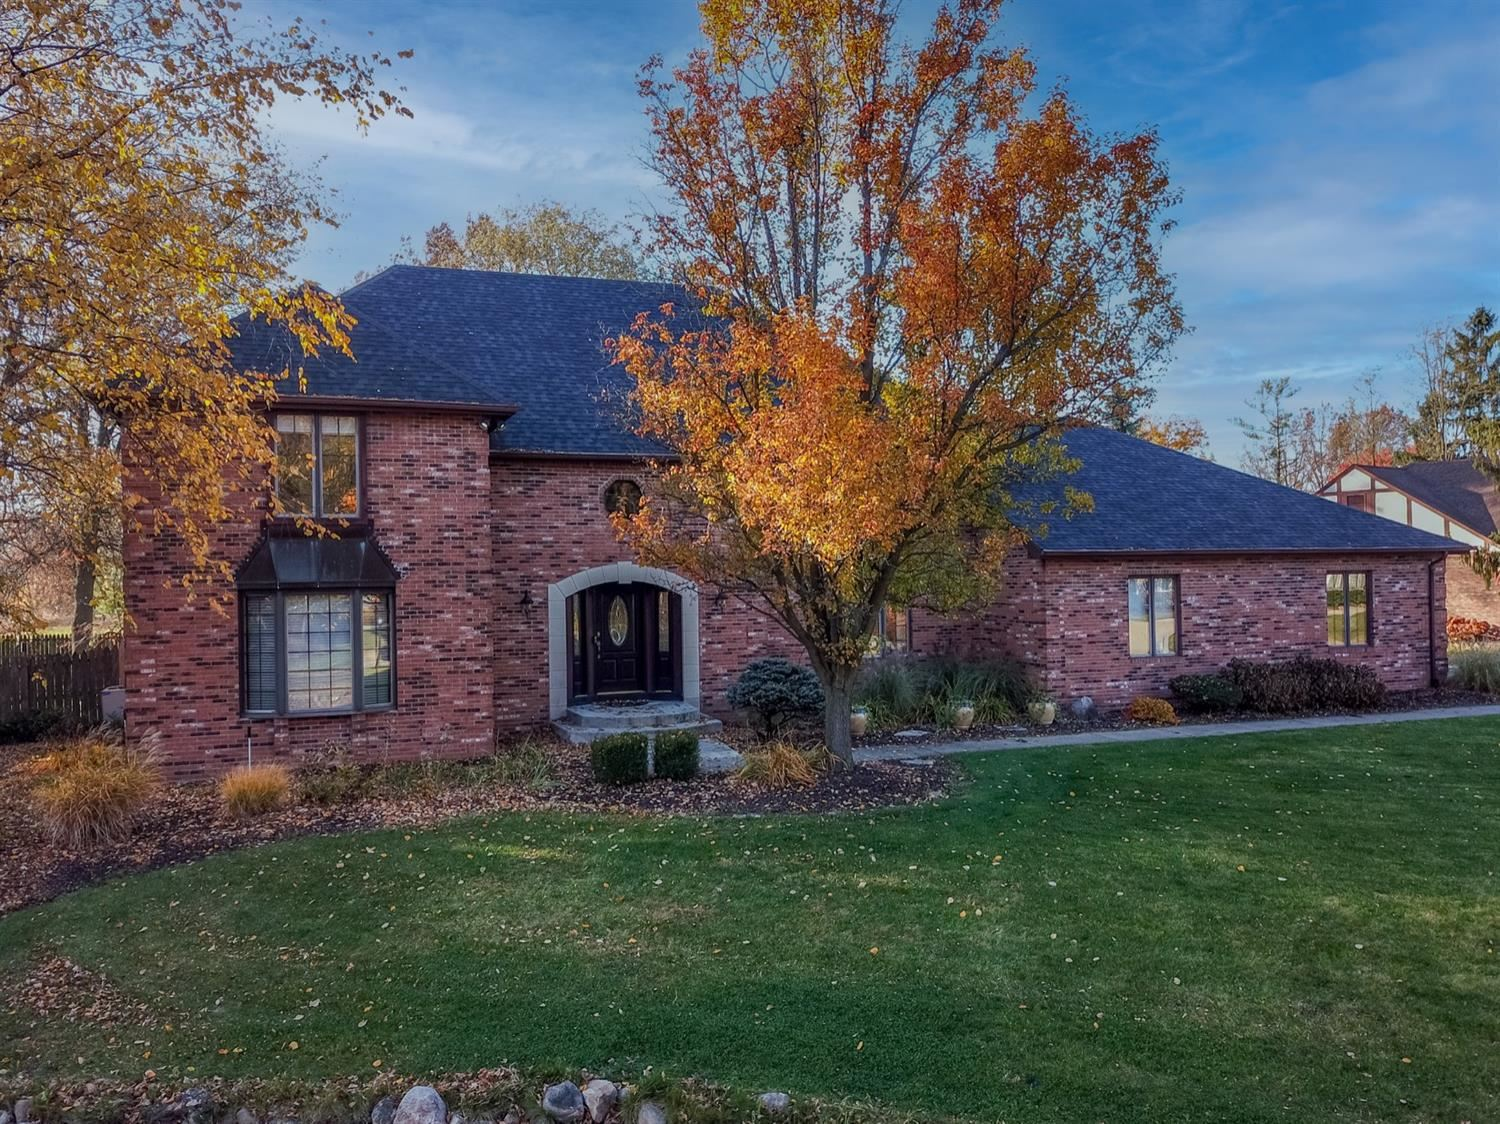 4105 Brentwood Drive, Valparaiso, IN 46383 - #: 484635